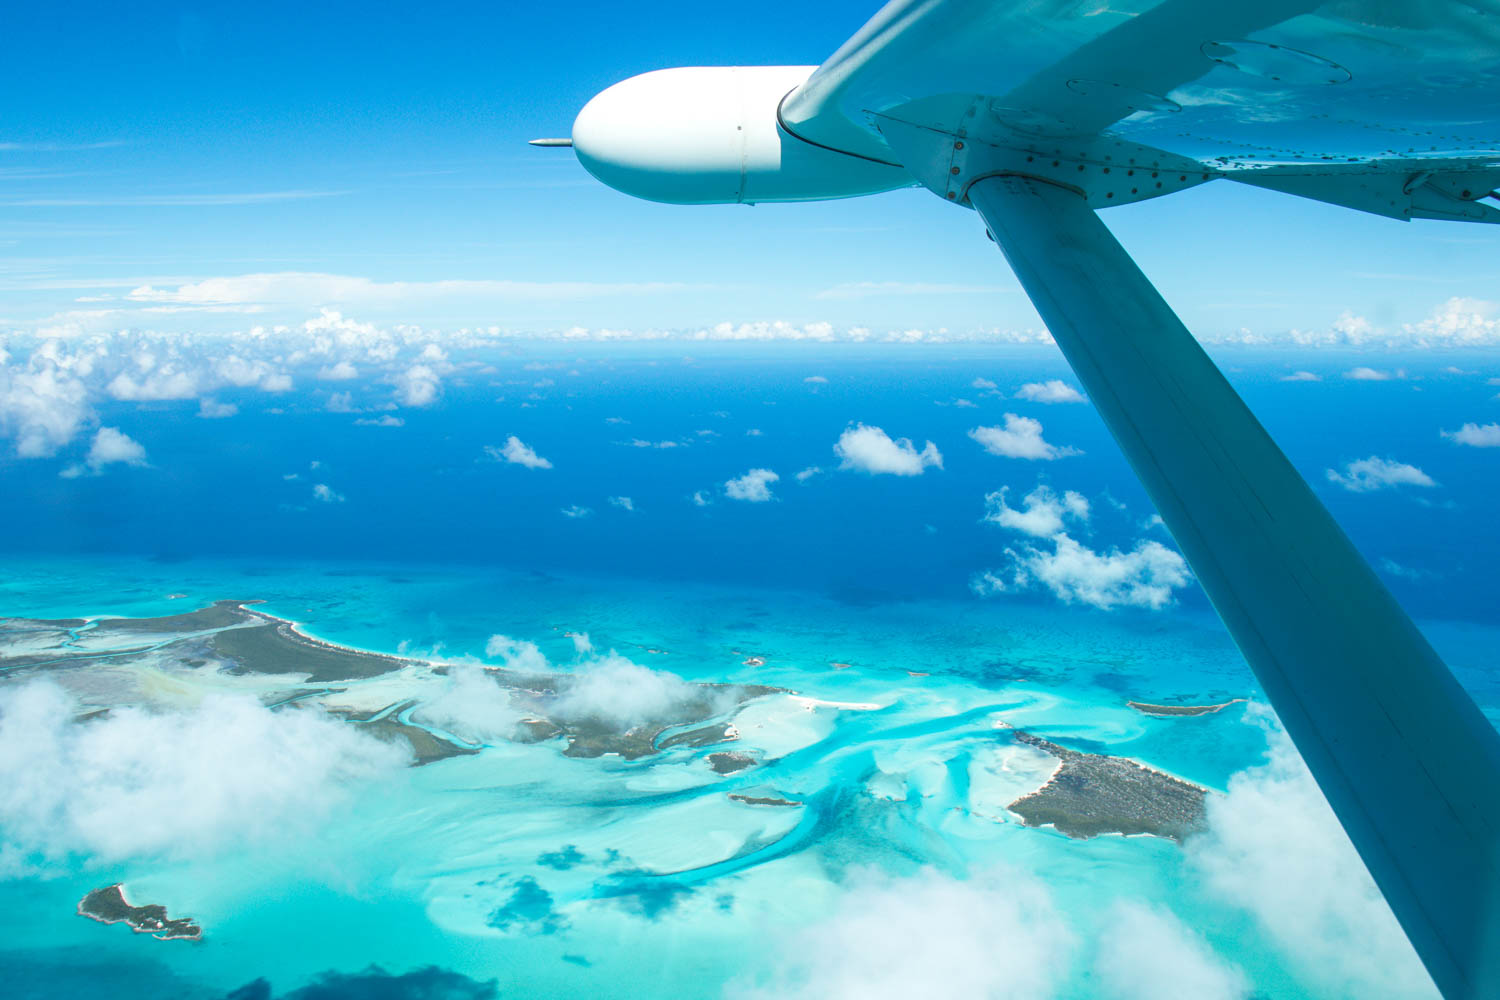 Take a day cruise to Bahamas for an alternative perspective of this beautiful region. A Miami to Bahamas plane leaves every day. Aerial view on Day trips to Bahamas.